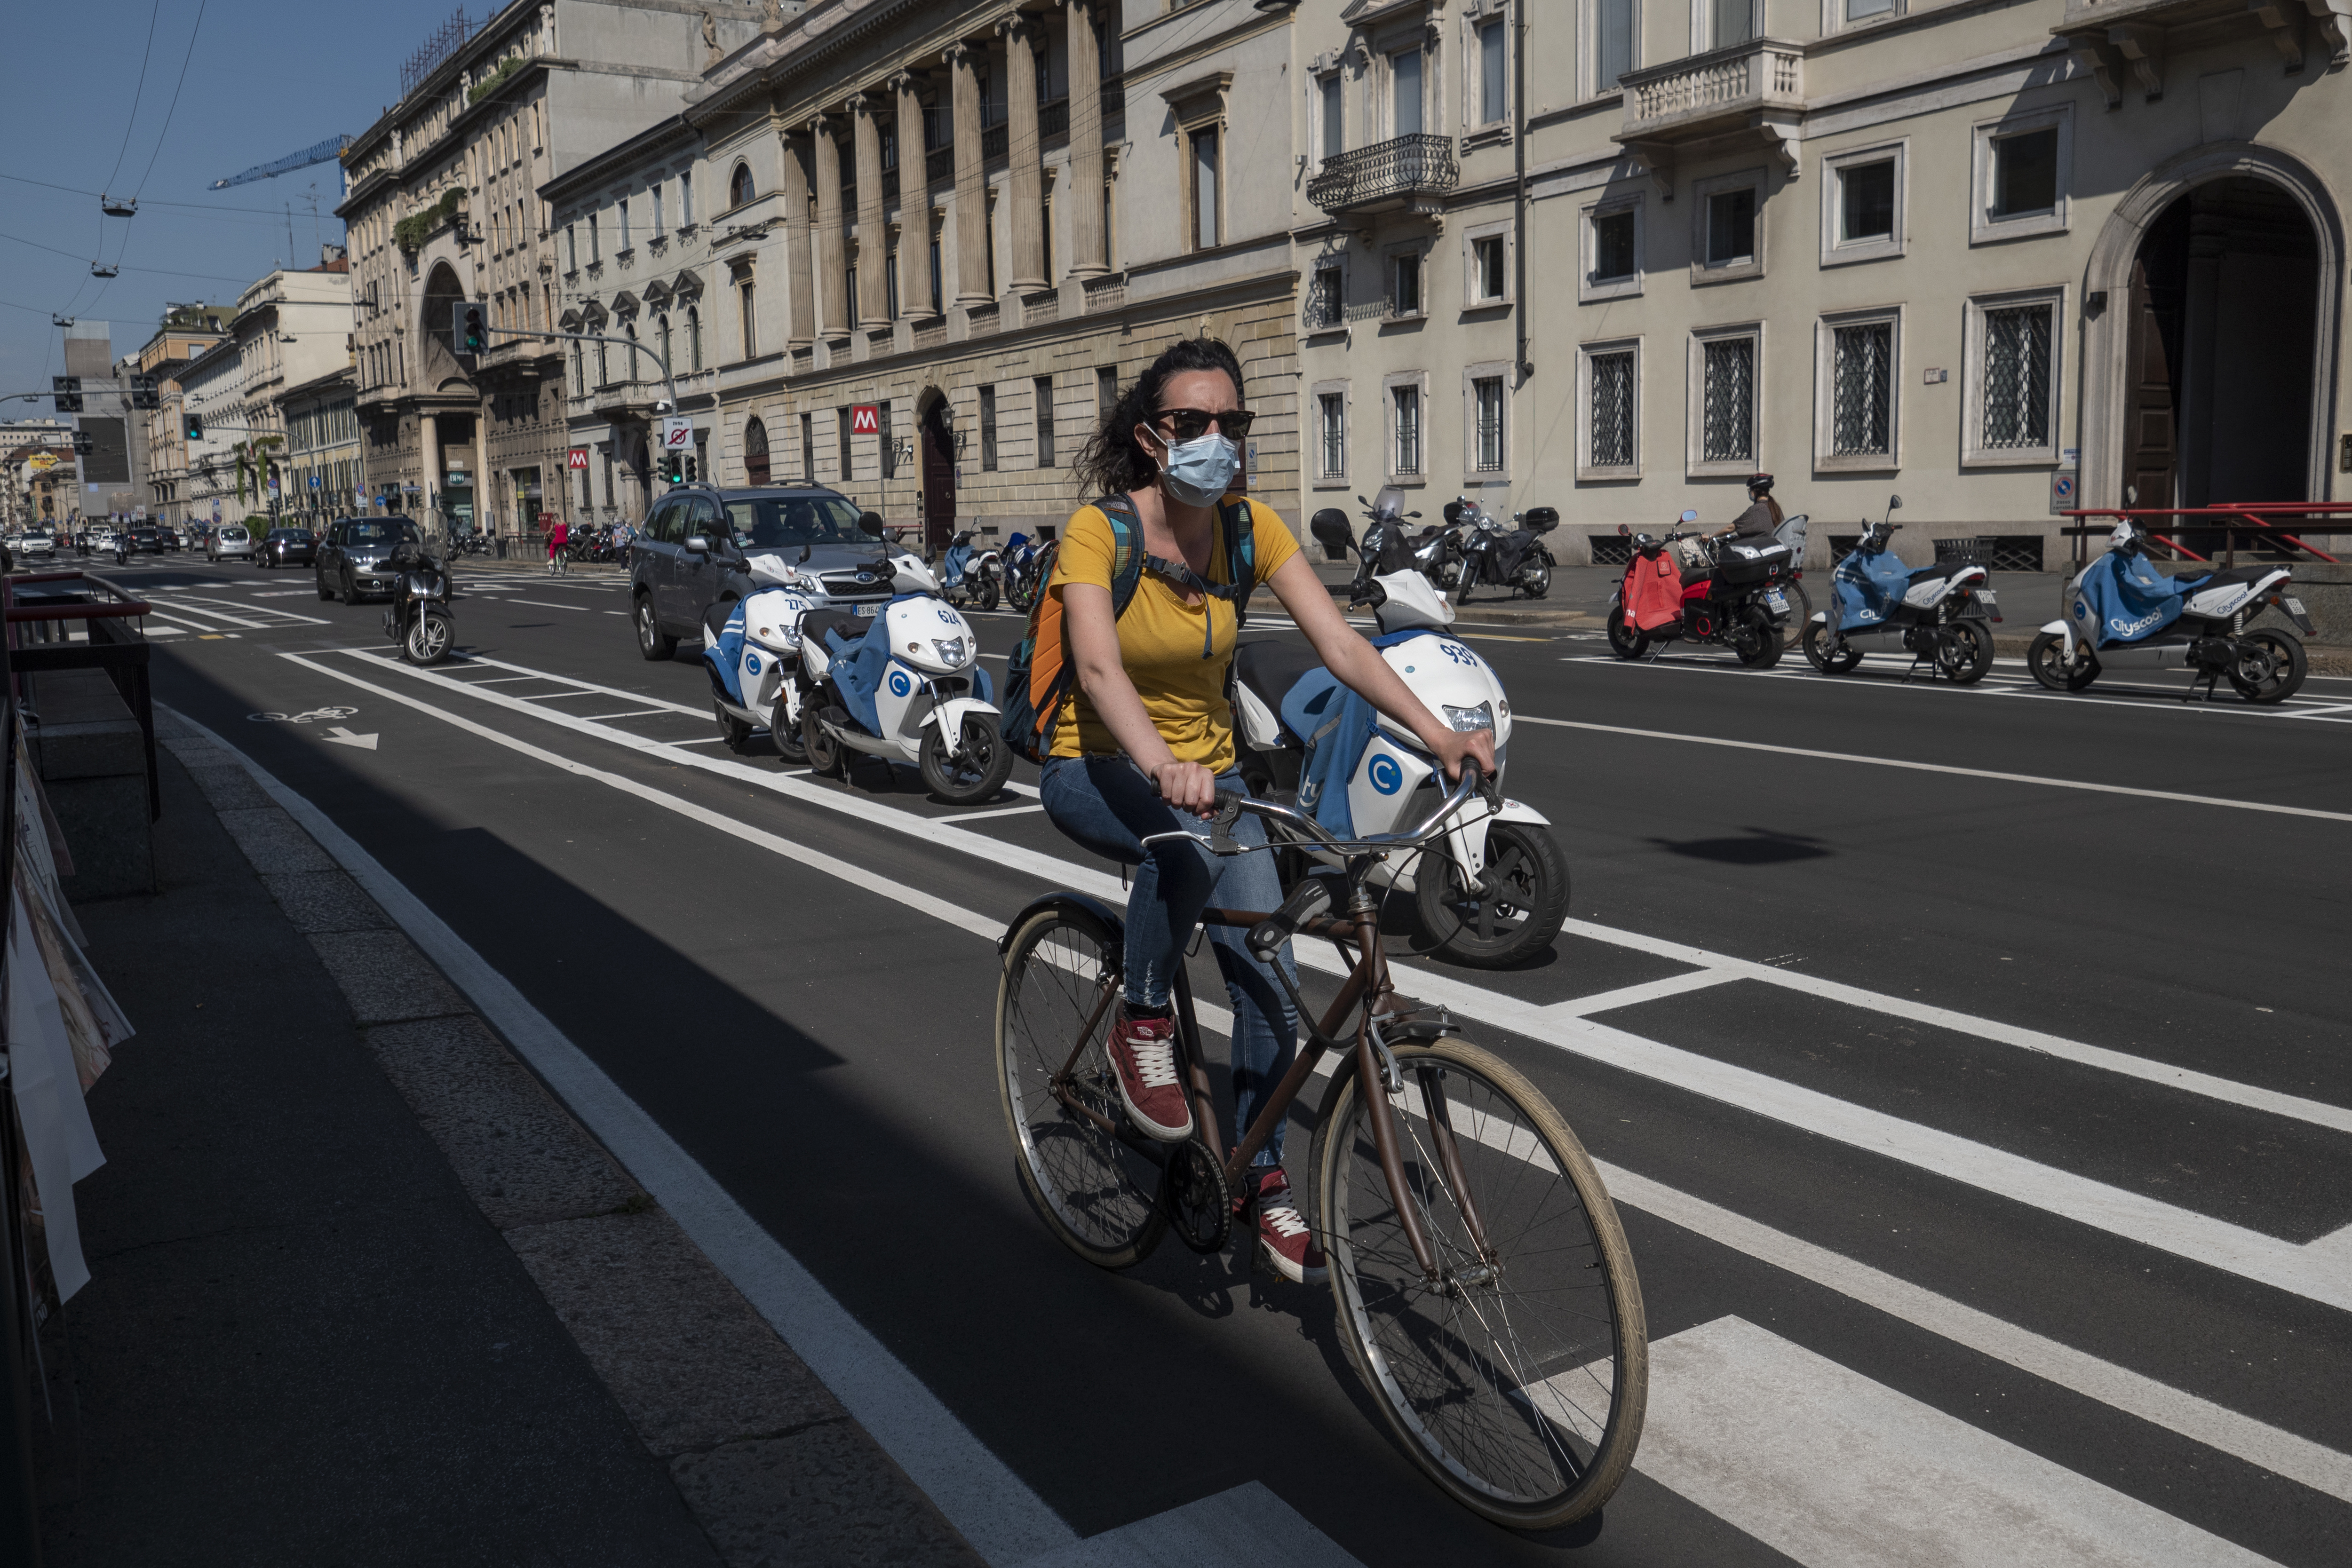 A cyclist rides in a new bike lane in Milan, Italy.